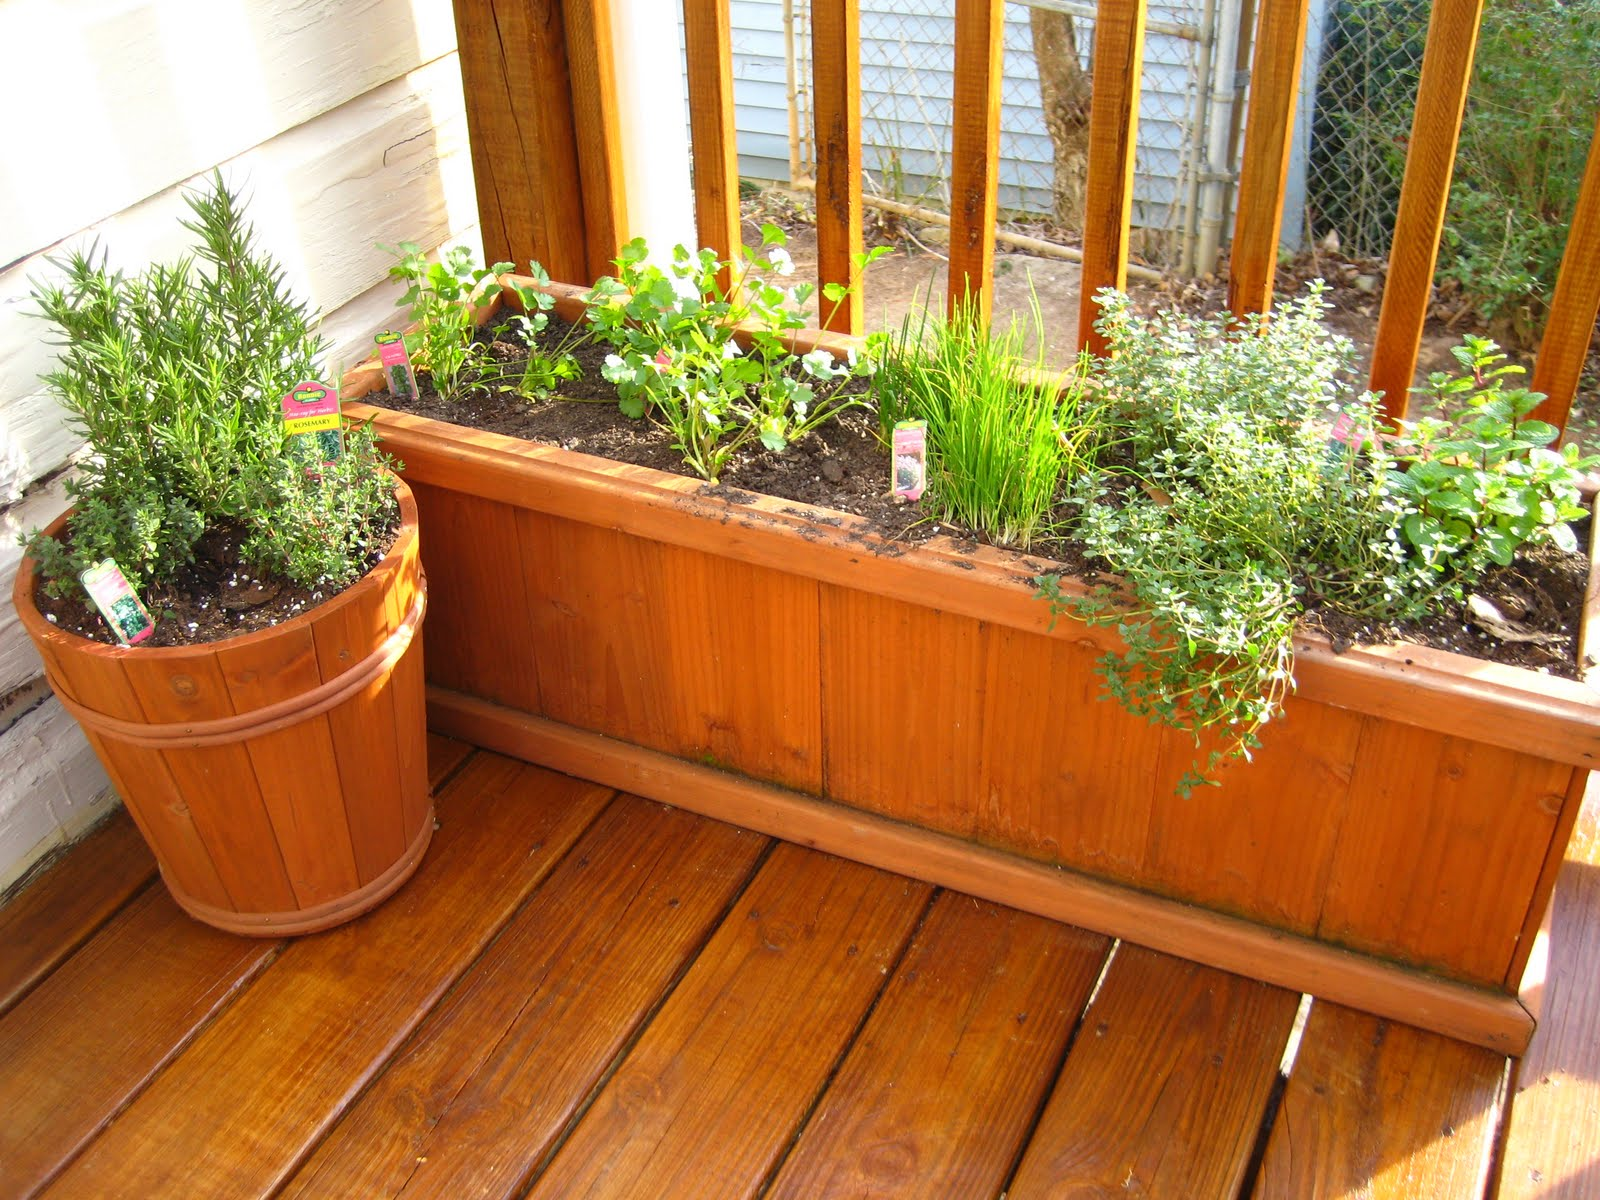 The Smith Nest Patio Herb Garden